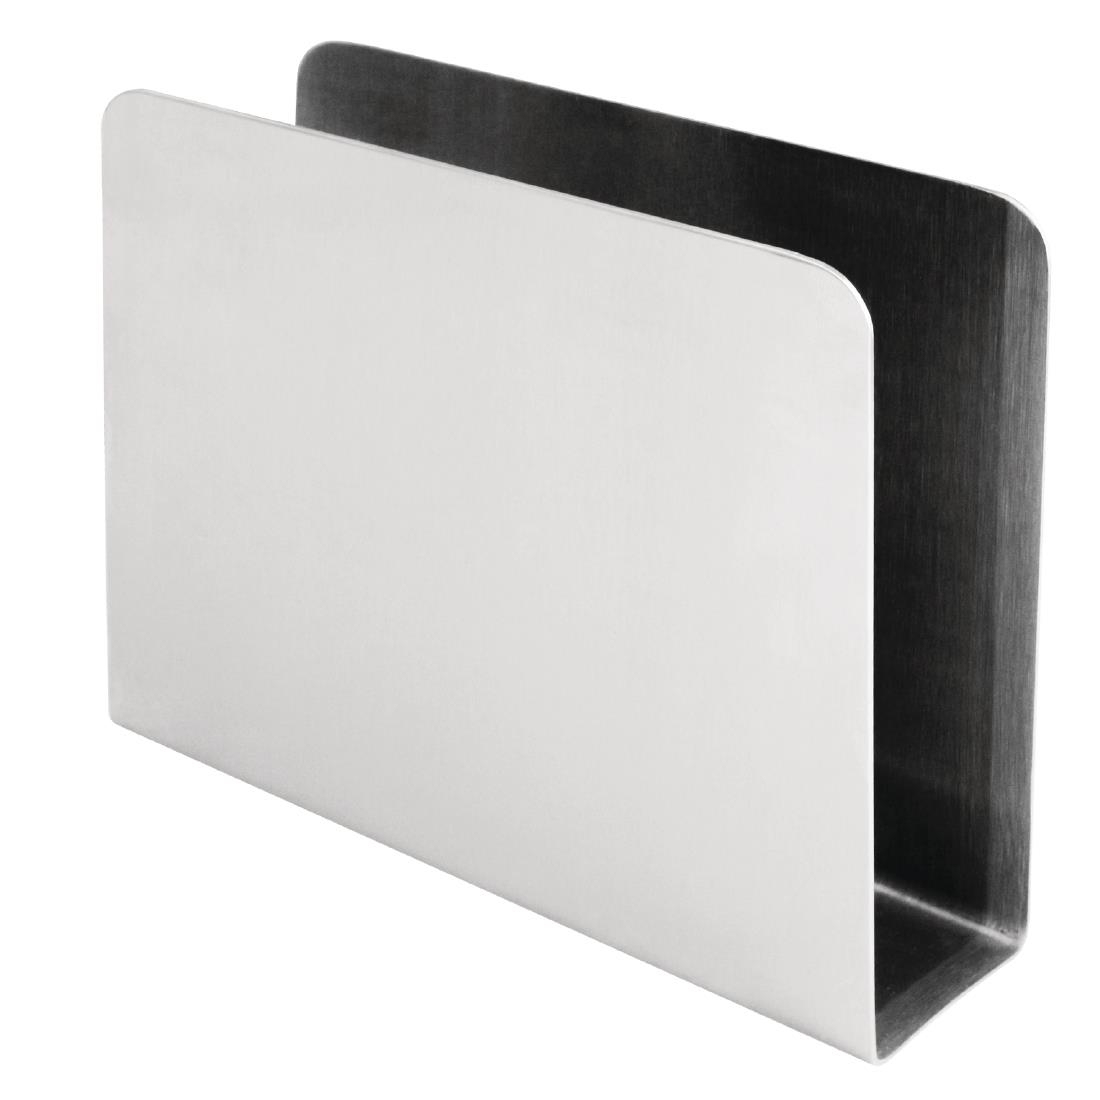 napkin holder stainless steel  cl  buy online at nisbets - napkin holder plain napkin holder plain